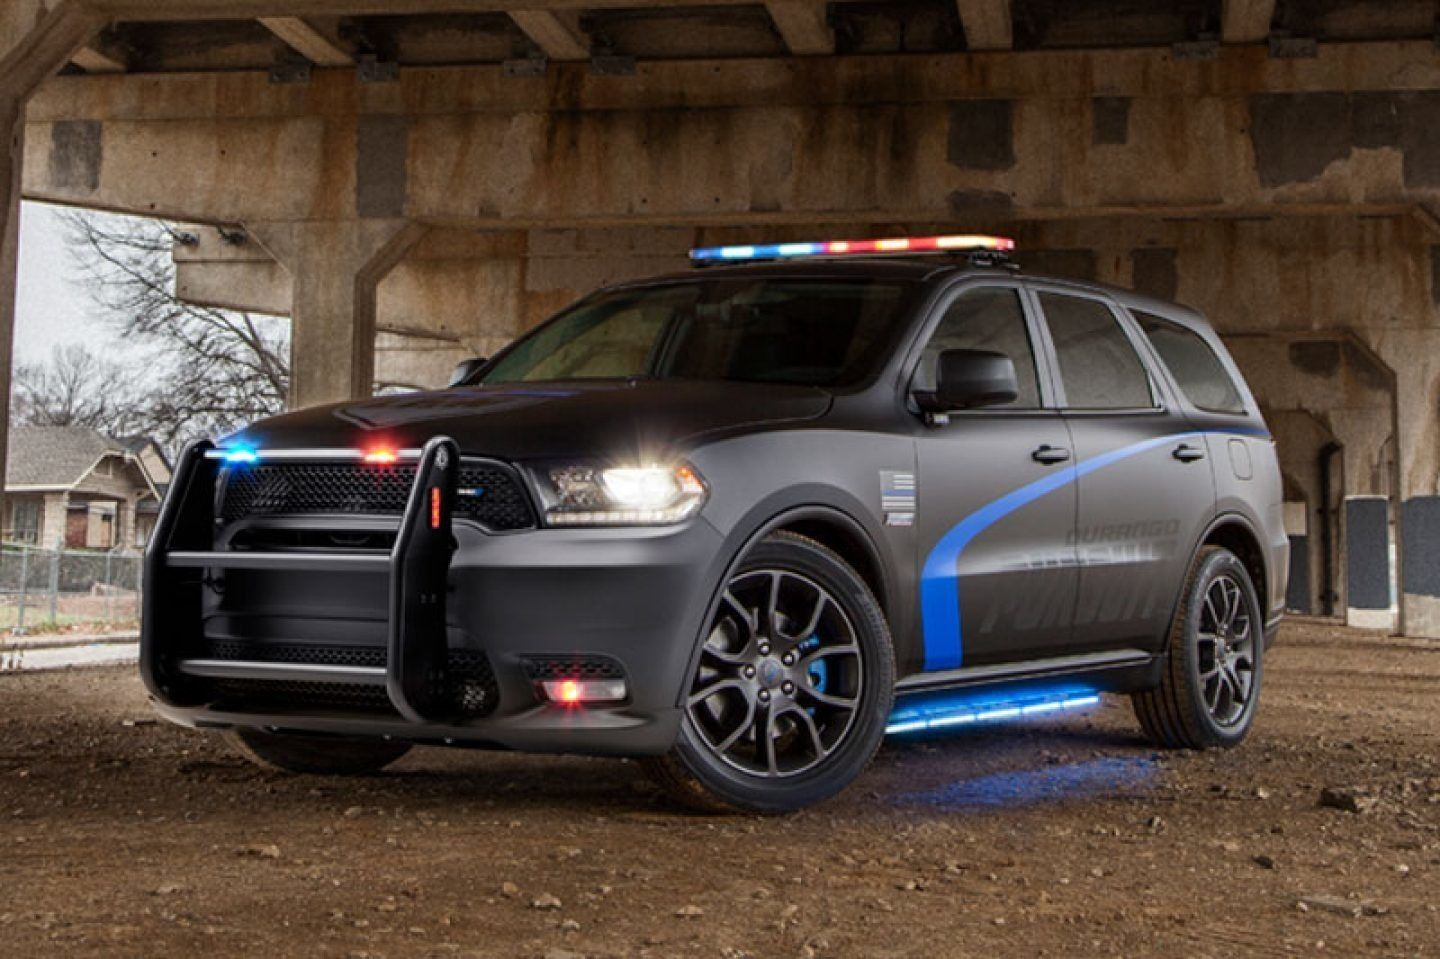 2019 Dodge Police Vehicles Picture Release Date And Review Dodge Durango Police Cars Dodge